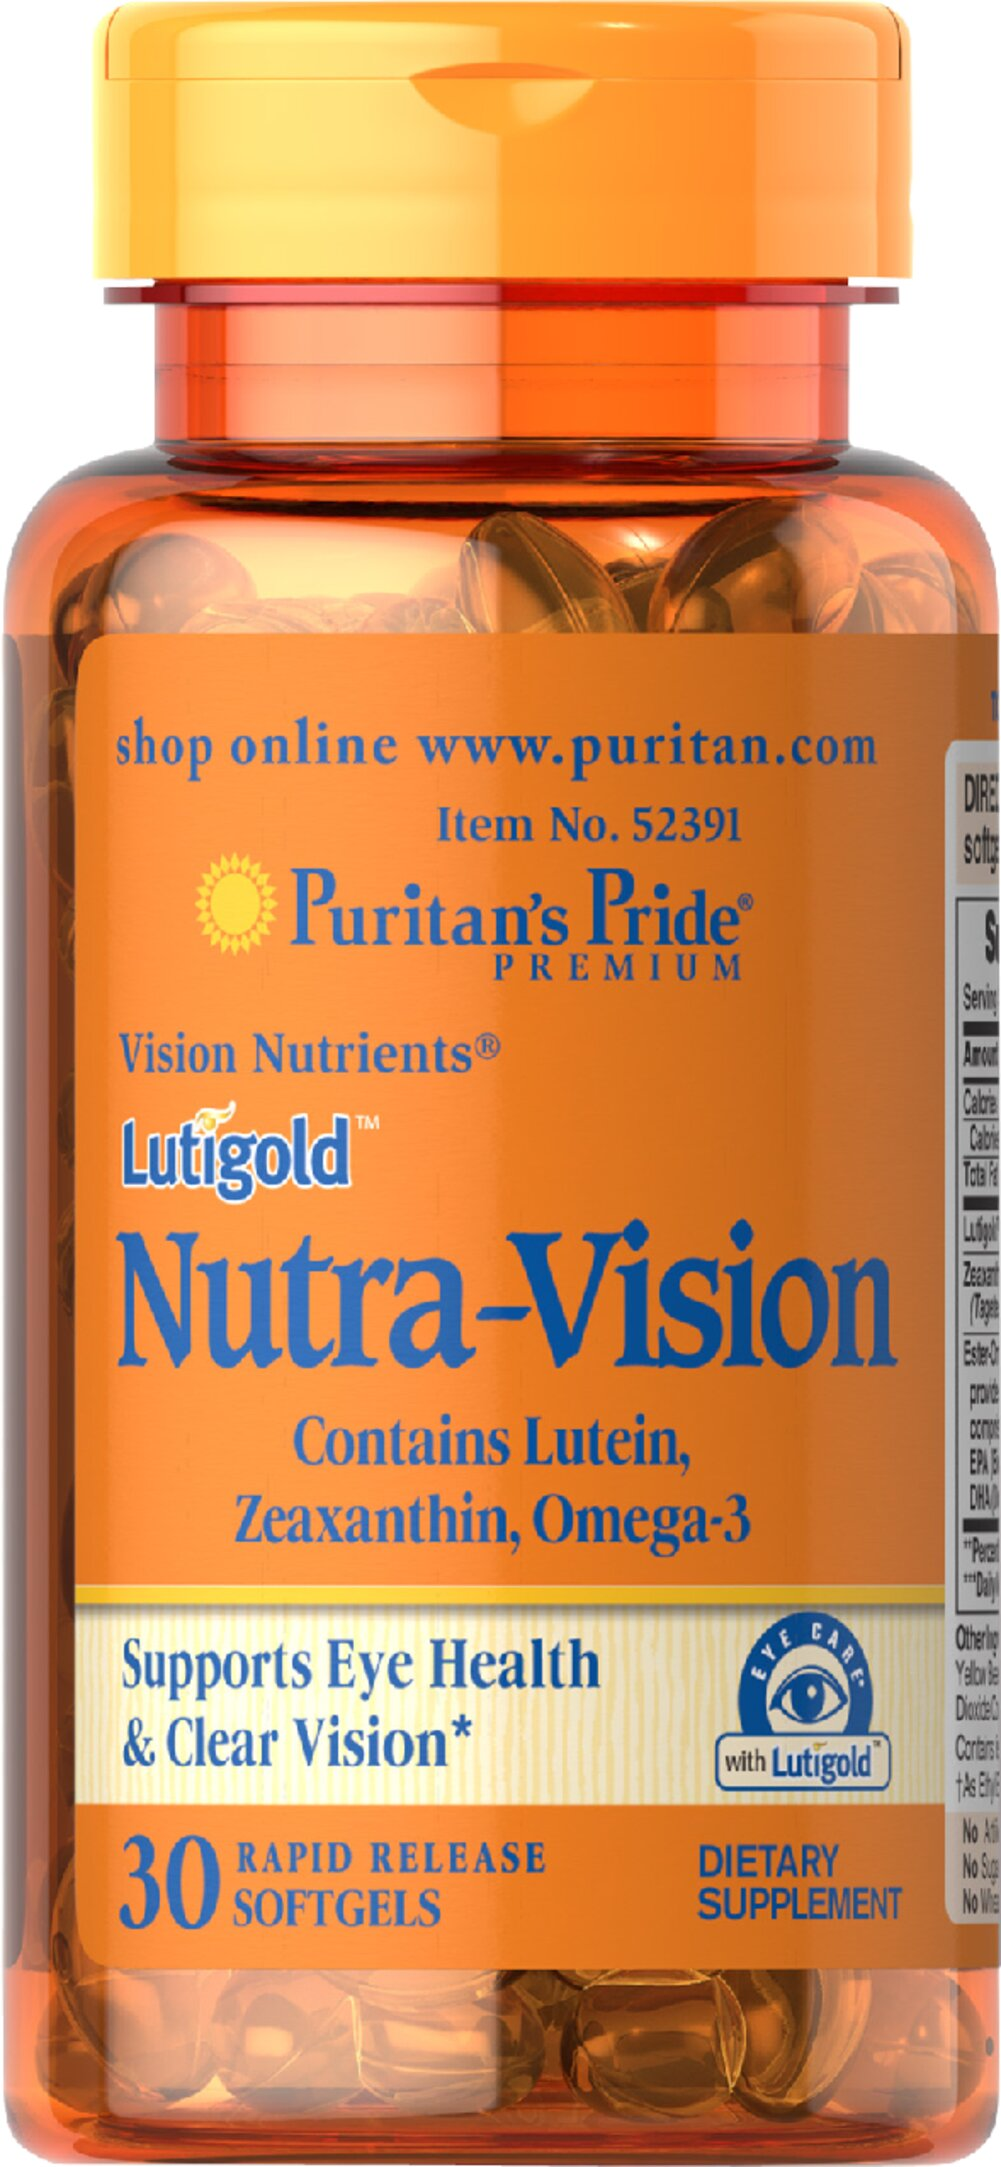 Lutigold™ Nutra-Vision with Lutein, Zeaxanthin & Omega-3 Thumbnail Alternate Bottle View